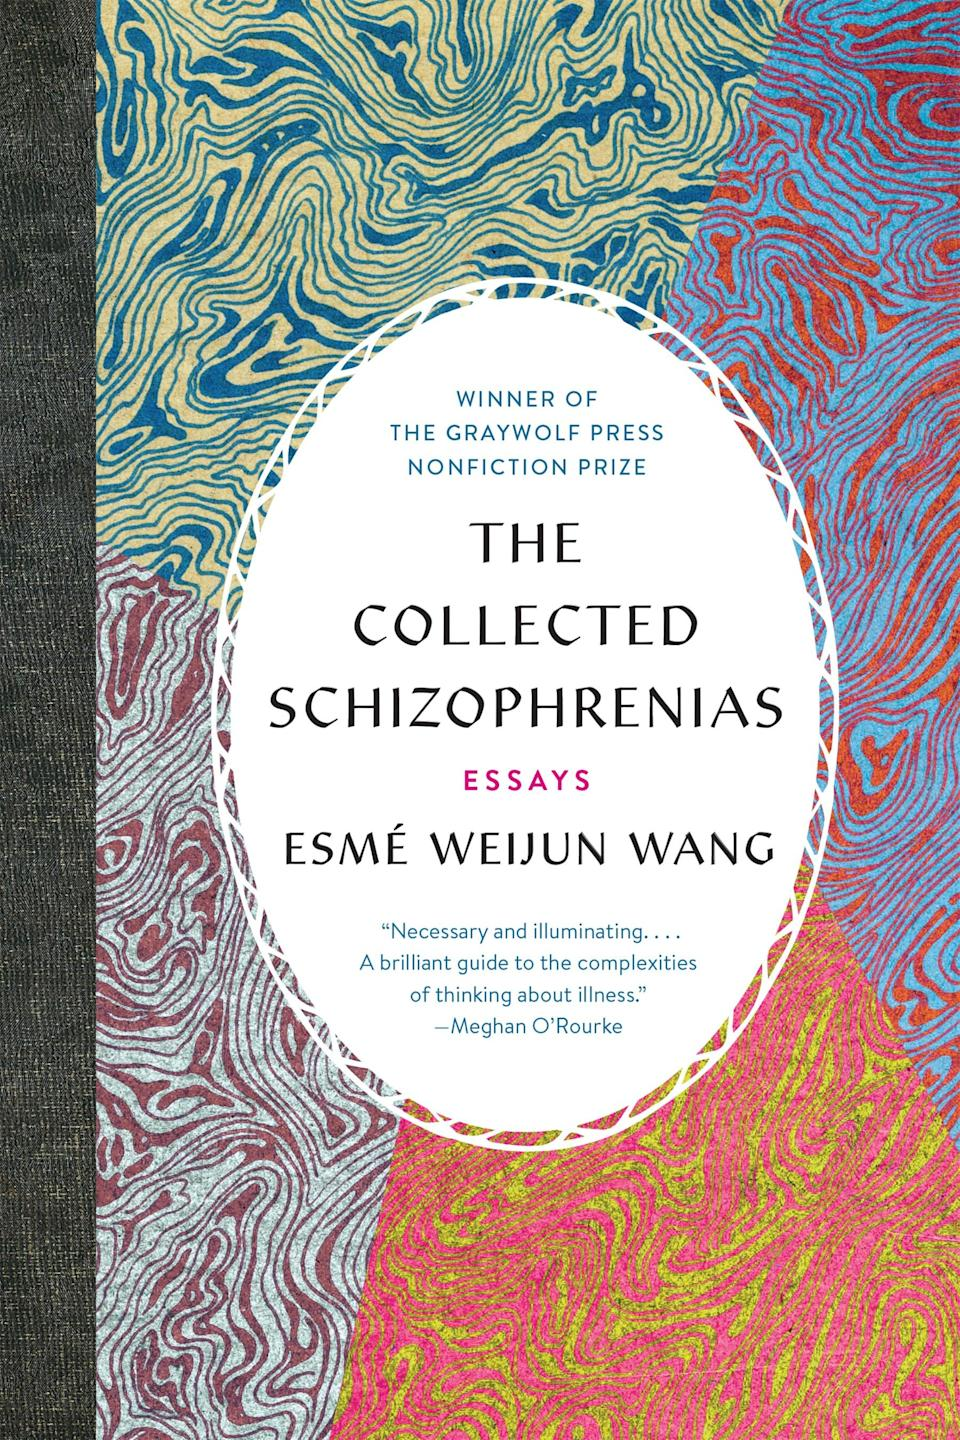 In this powerful collection, author and former fashion editor Wang opens up about her schizoaffective disorder. The entries paint a vivid picture of life with a chronic mental illness—from how Wang uses fashion as armor, to the relationship between smeared red lipstick and mental instability, to her long journey toward finding a diagnosis. A book that celebrates the perseverance of the human spirit.